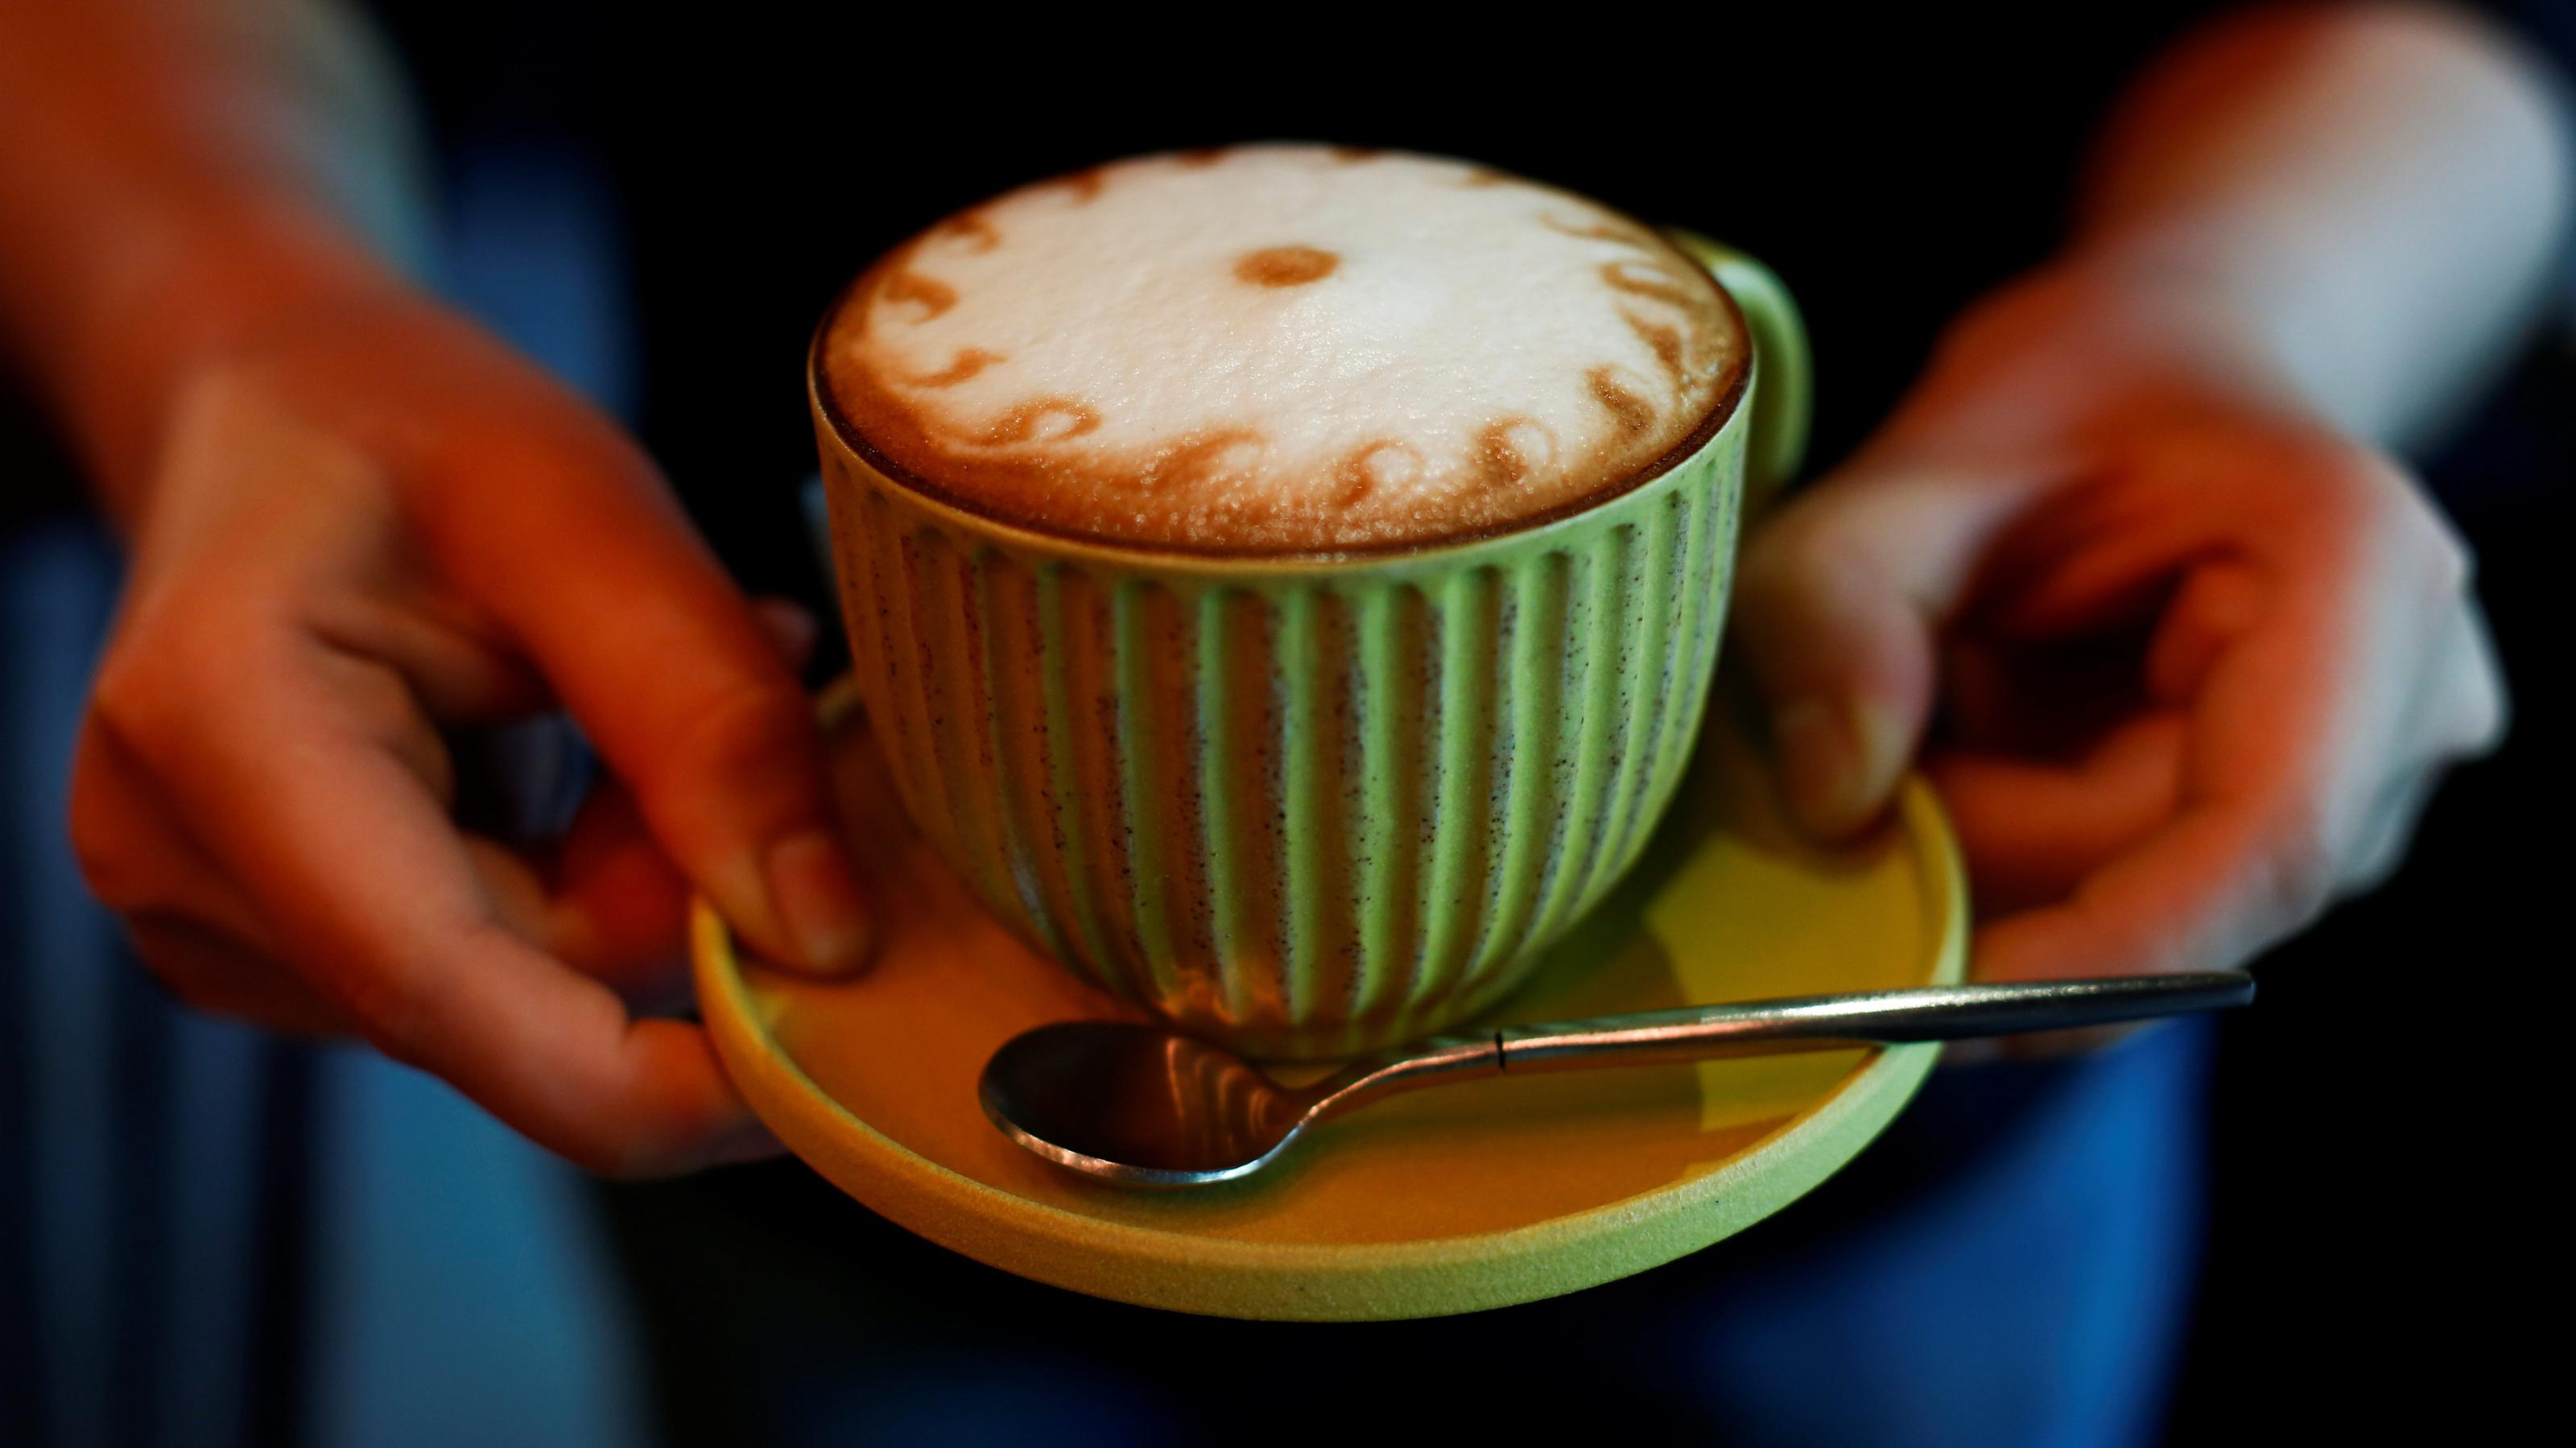 Drinking collagen has health benefits—but don't put it in coffee